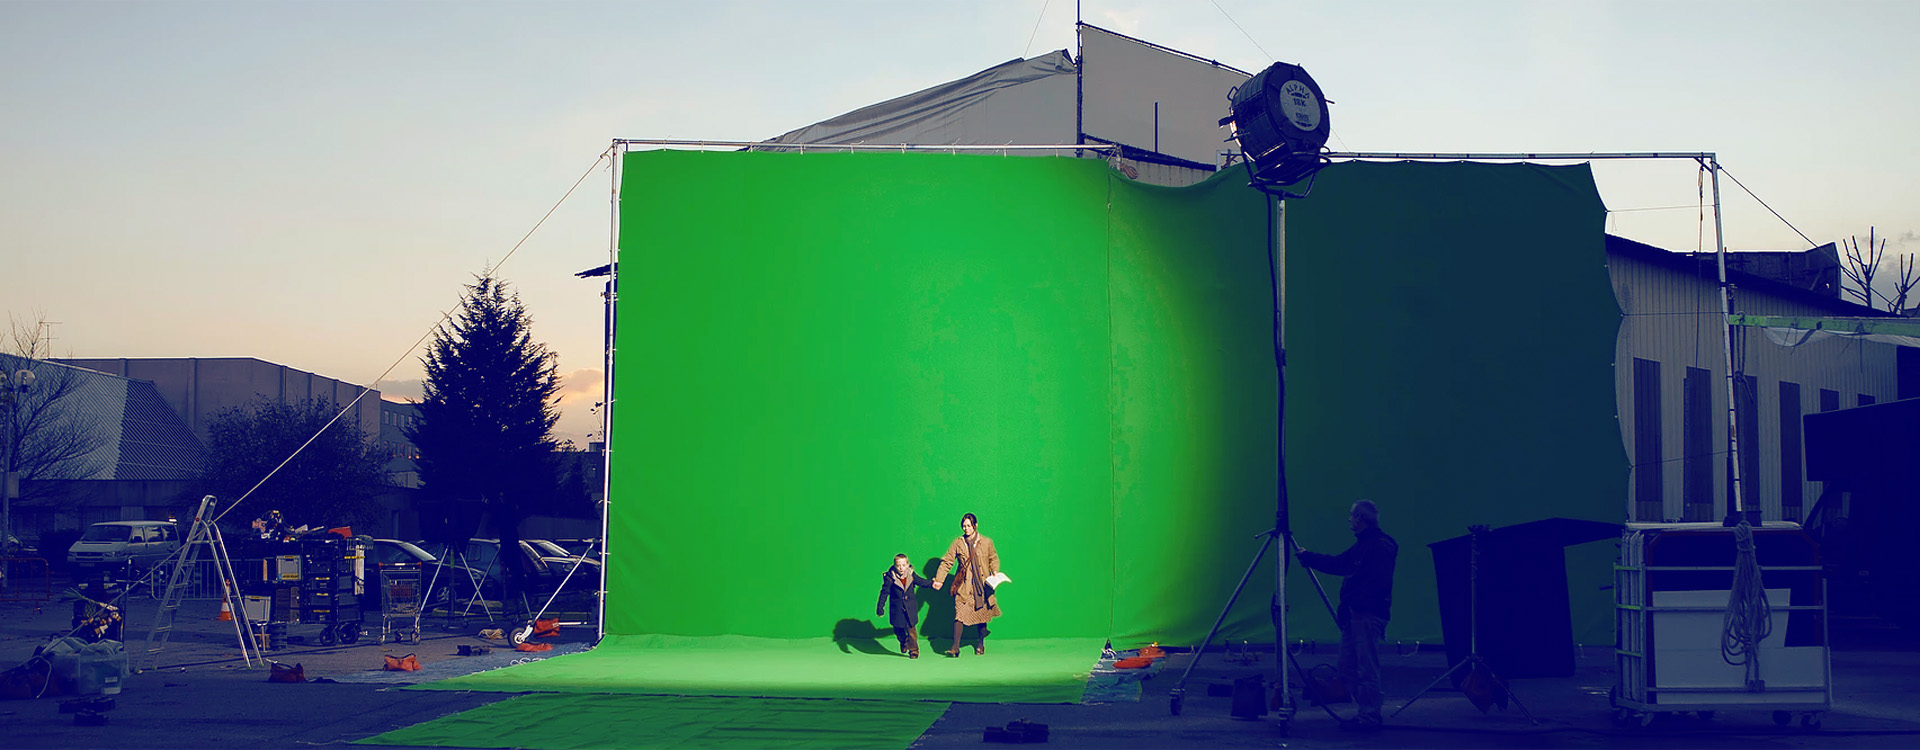 filming location in front of a green screen